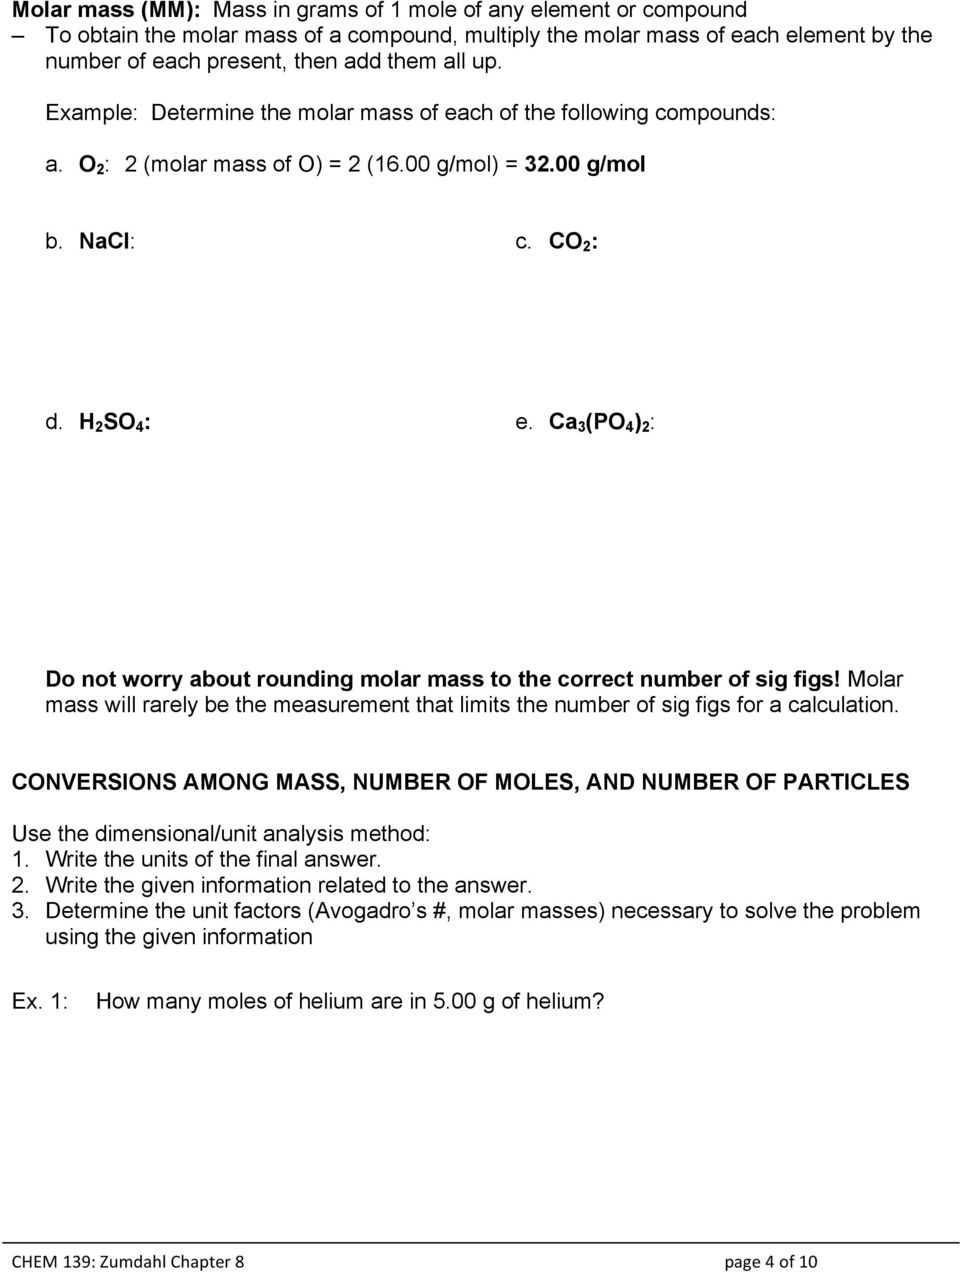 Ca 3 (PO 4 ) 2 : Do not worry about rounding molar mass to the correct number of sig figs! Molar mass will rarely be the measurement that limits the number of sig figs for a calculation.